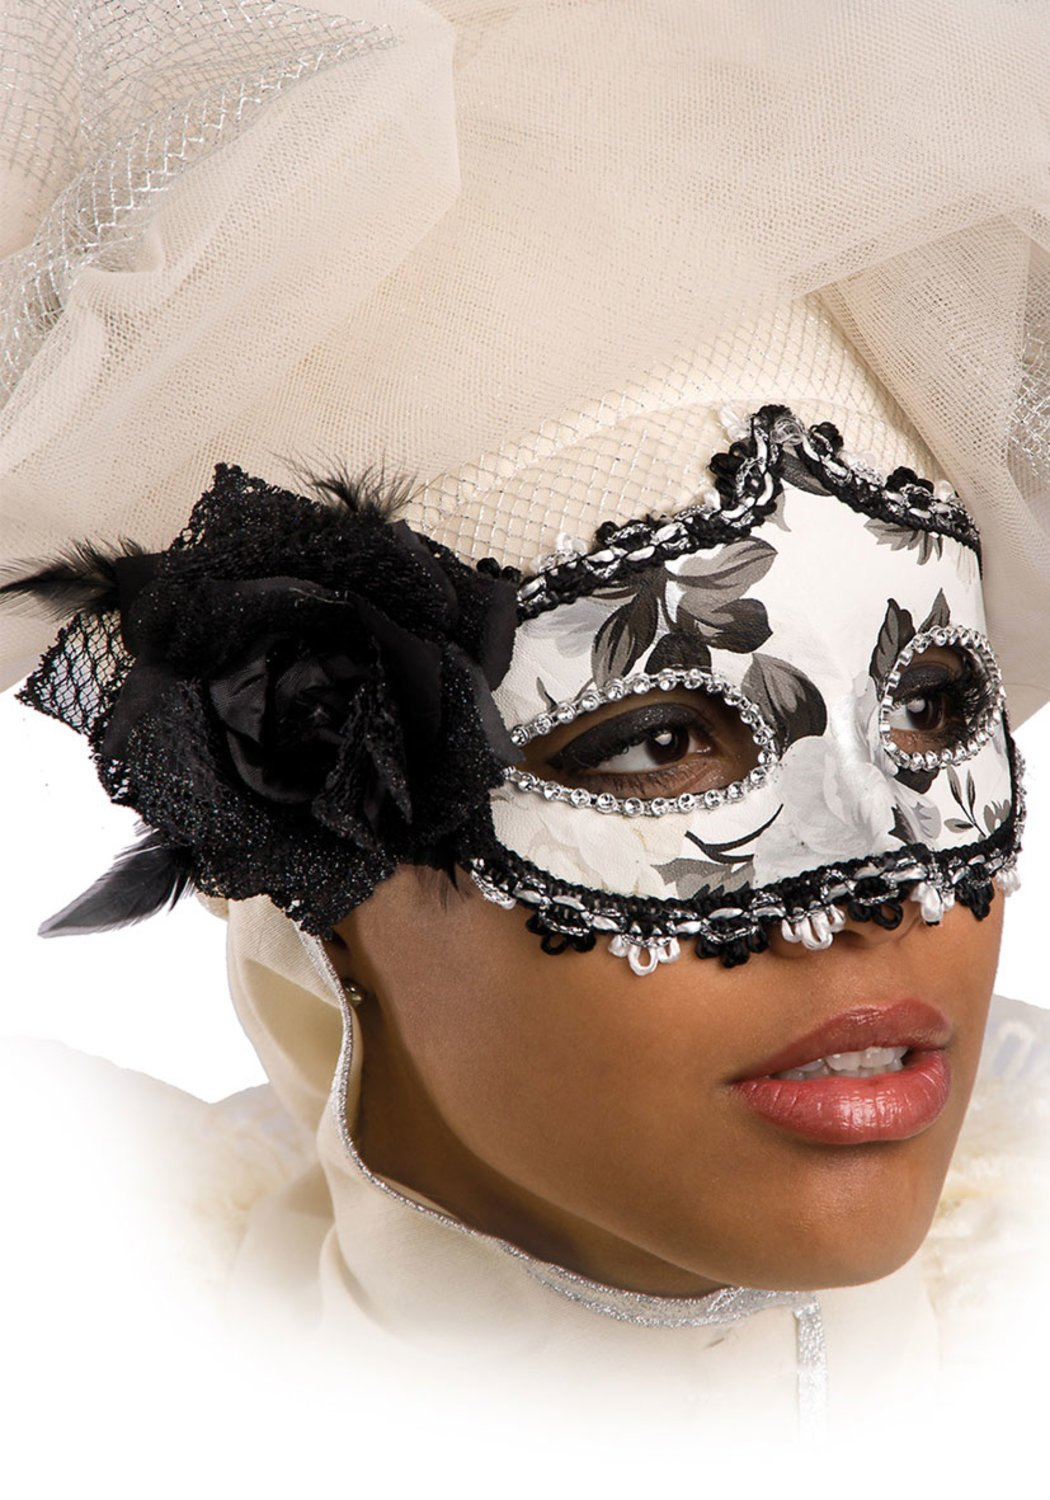 Ansiktsmask - Black and white mask with rose and feathers